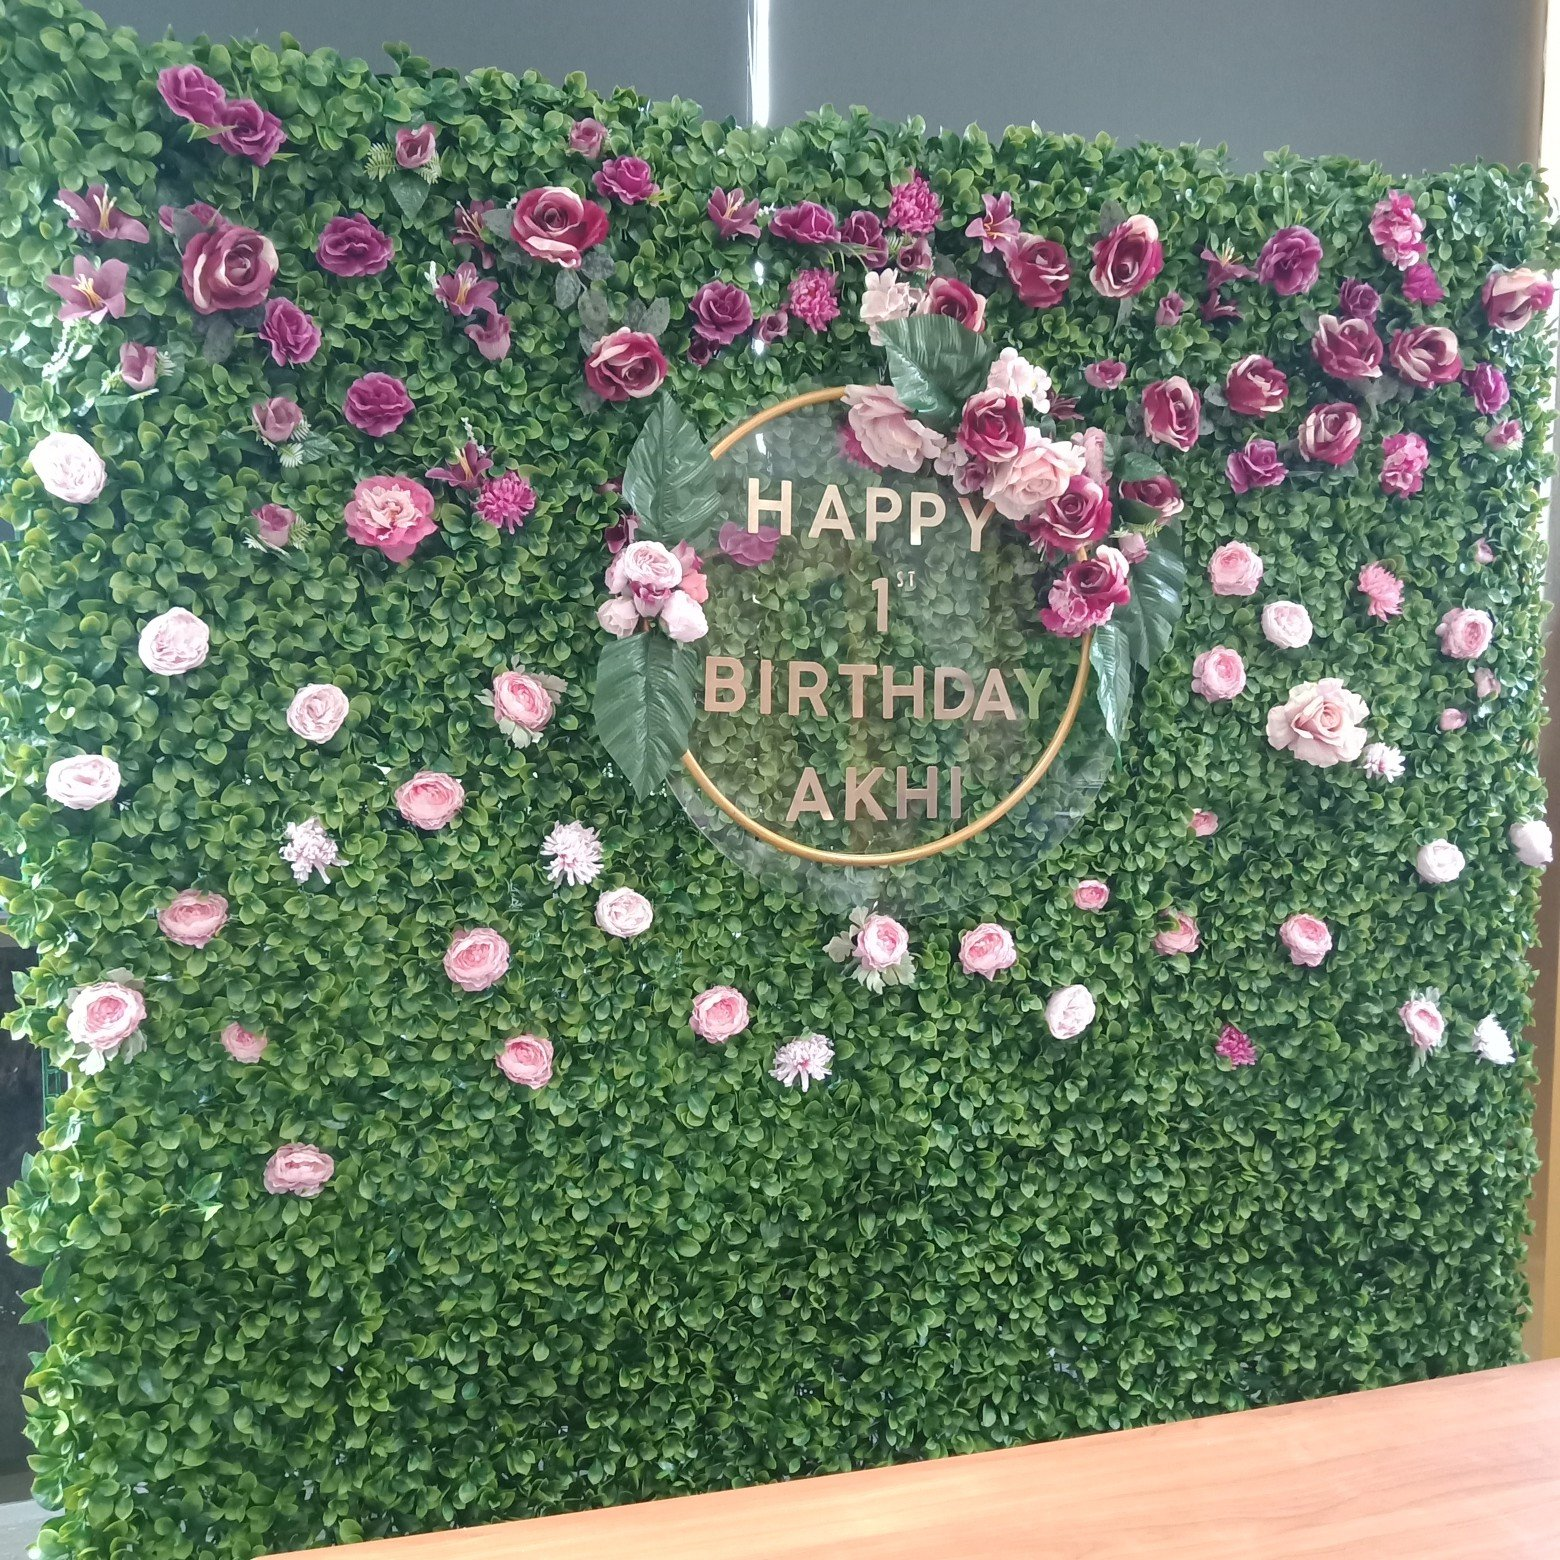 Flower Wall Hire Melbourne From 200 Melbourne S Cheapest Flower Wall Hire Easy Hire Melbourne